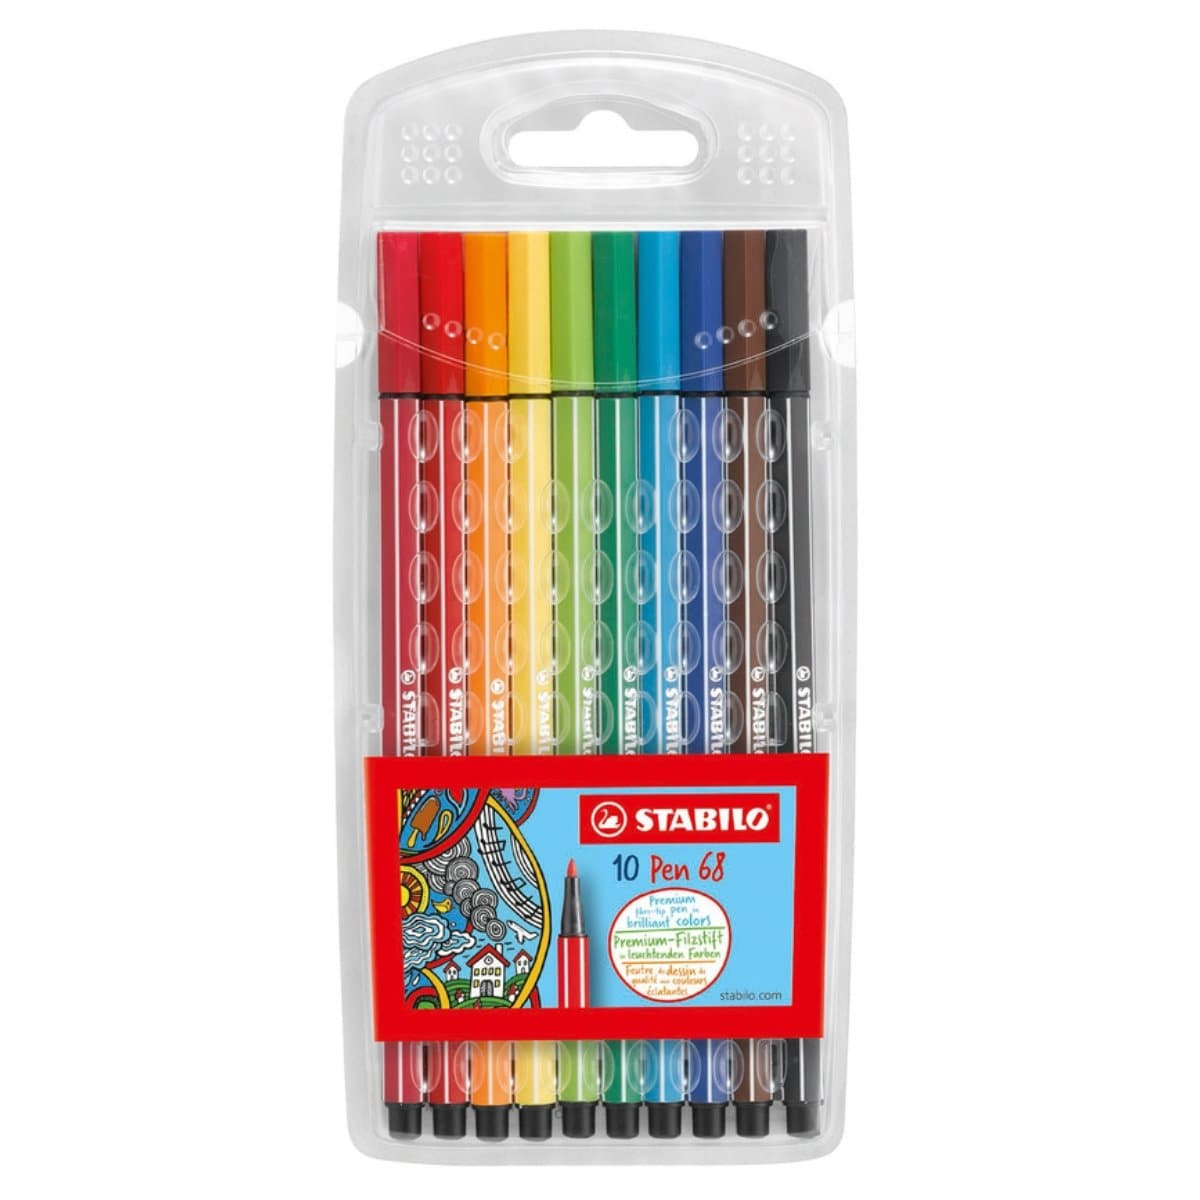 Stabilo Pen 68 Color Fibre-Tip Pen, 1mm, 10/pack